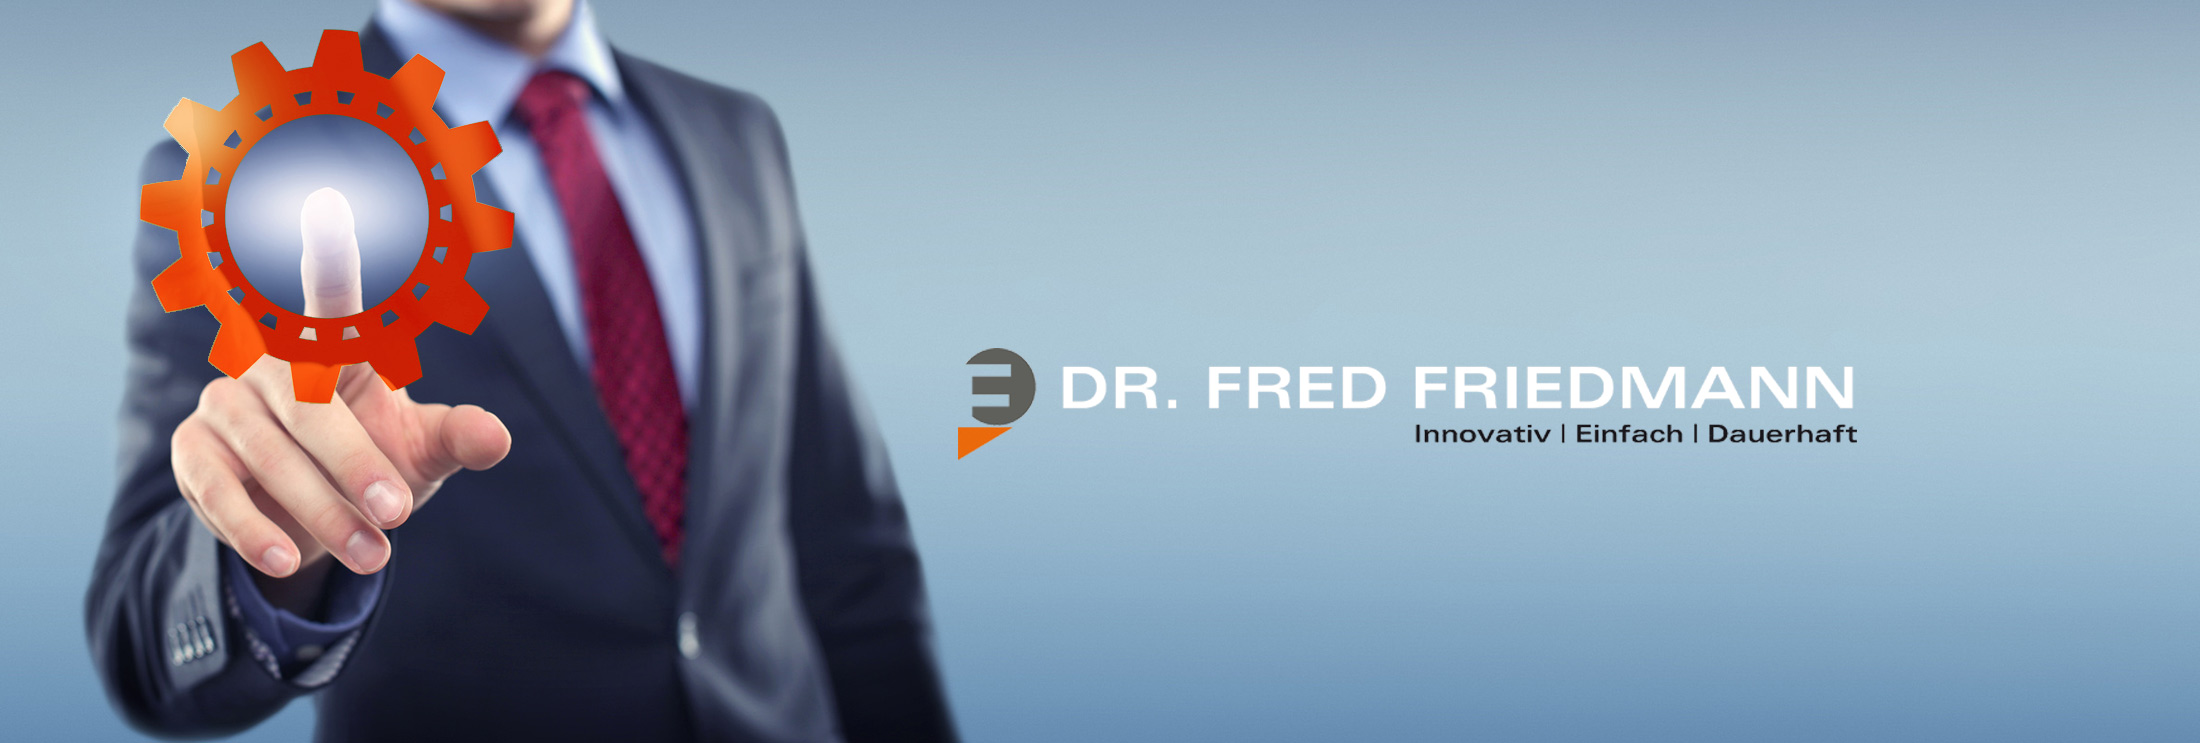 Dr. Fred Friedmann